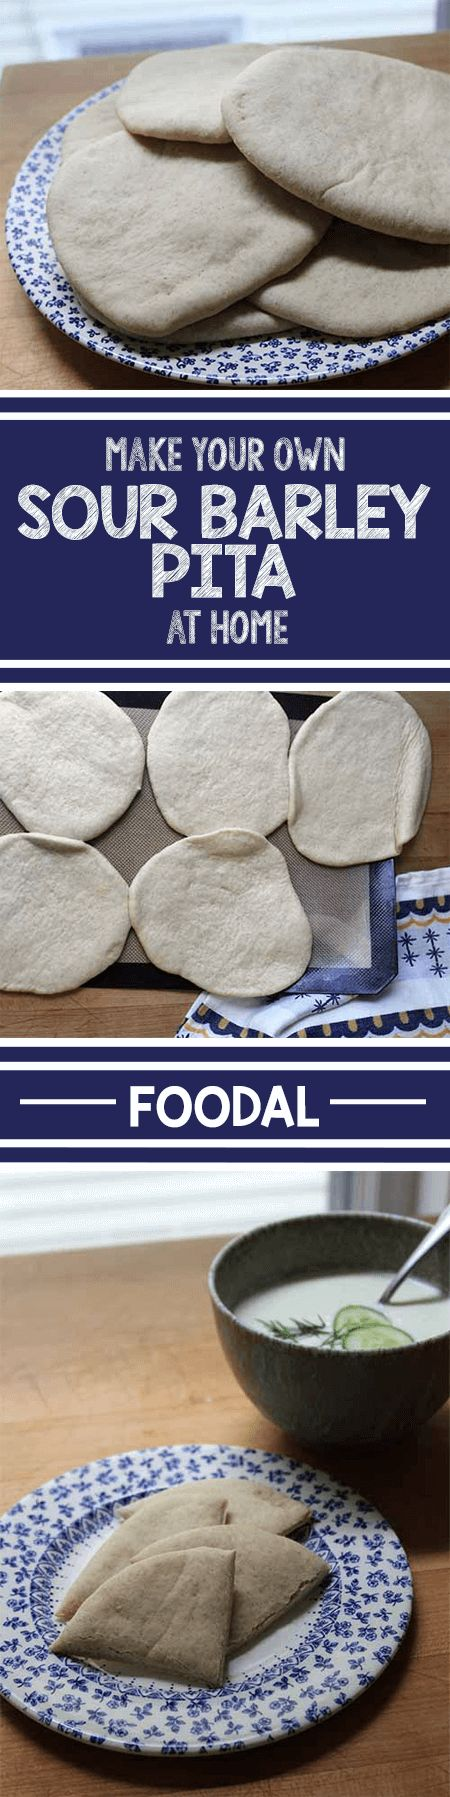 Make your own fresh pita in your own home oven. This simple recipe, made with a combination of wheat and barley flours, is soft and full of flavor. Eat it on its own, use it as a wrap for sandwiches, or even as the crust for homemade mini pizzas. It's a great recipe for novice bakers, and this post offers a helpful introduction to several baking techniques. http://foodal.com/recipes/breads/sour-barley-pita/